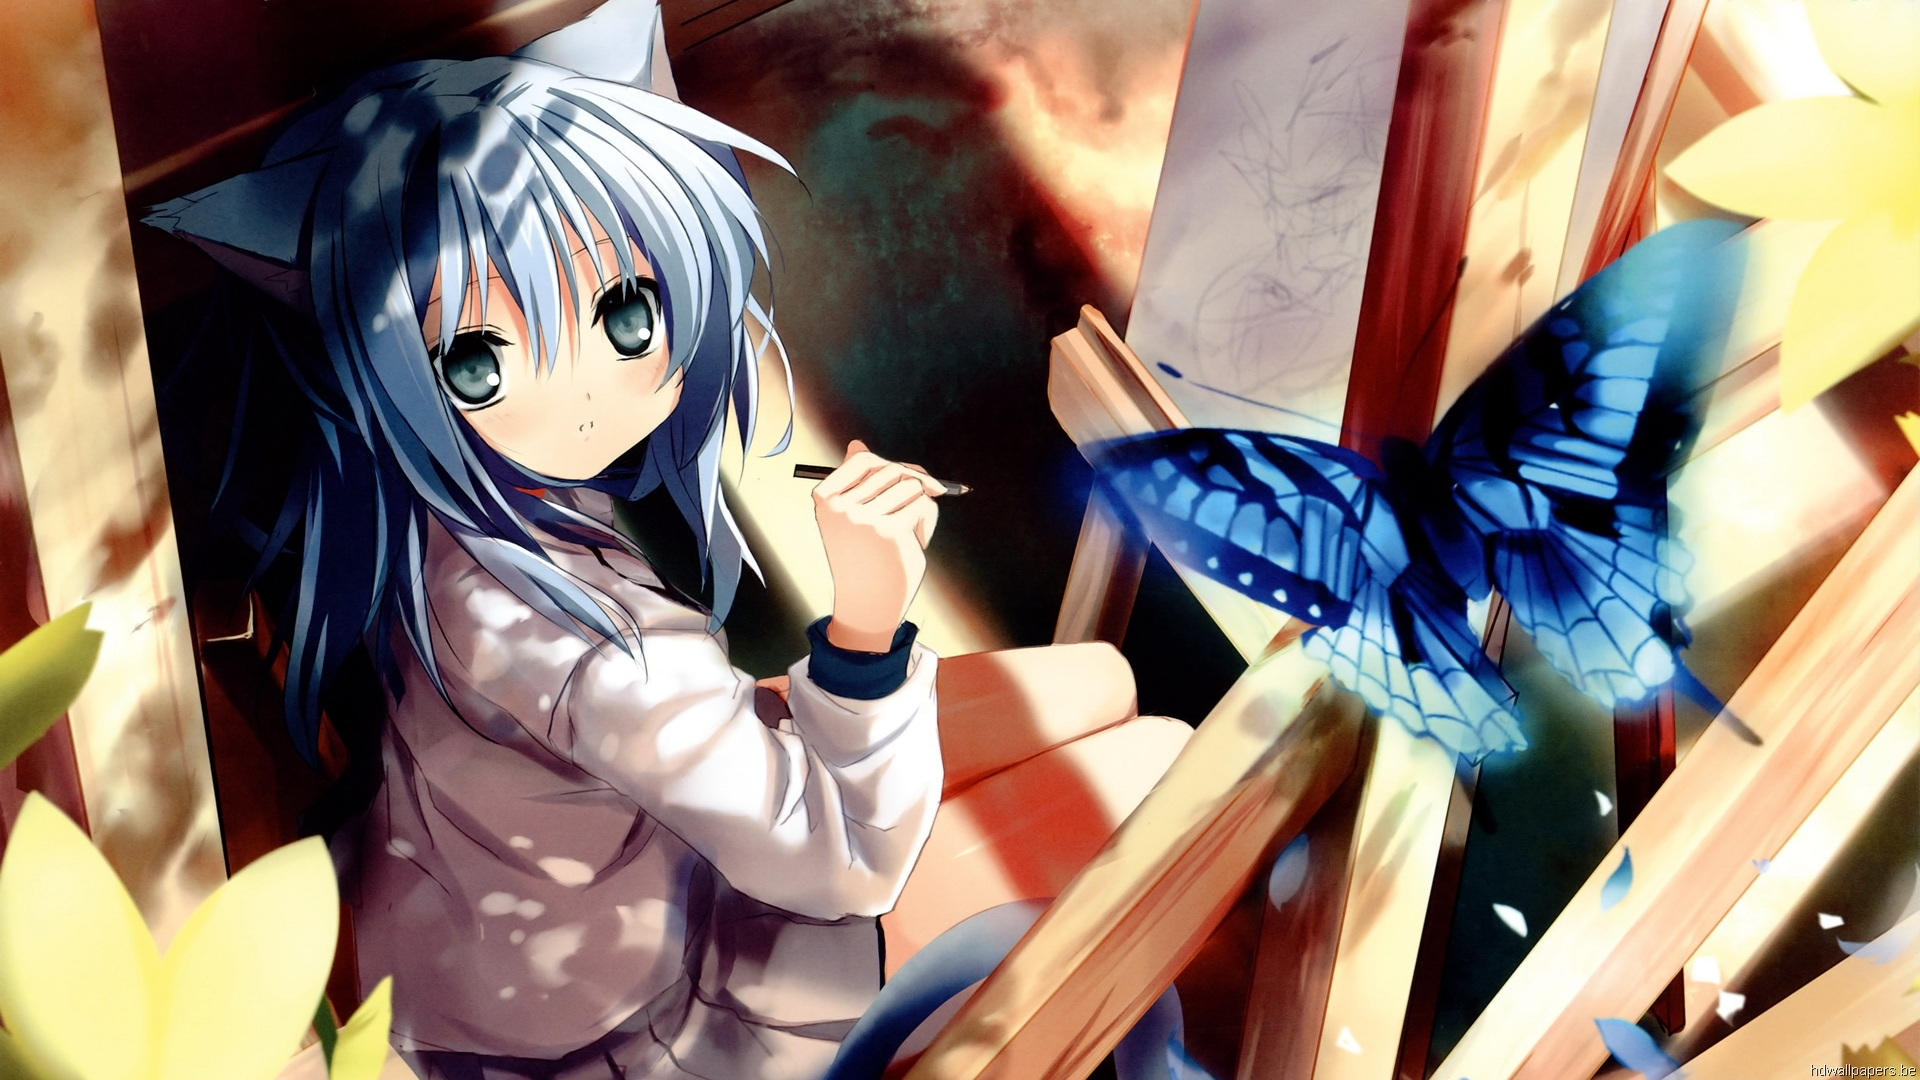 HD Anime Wallpapers Desktop Anime Wallpaper HD 23 1920x1080 1920x1080